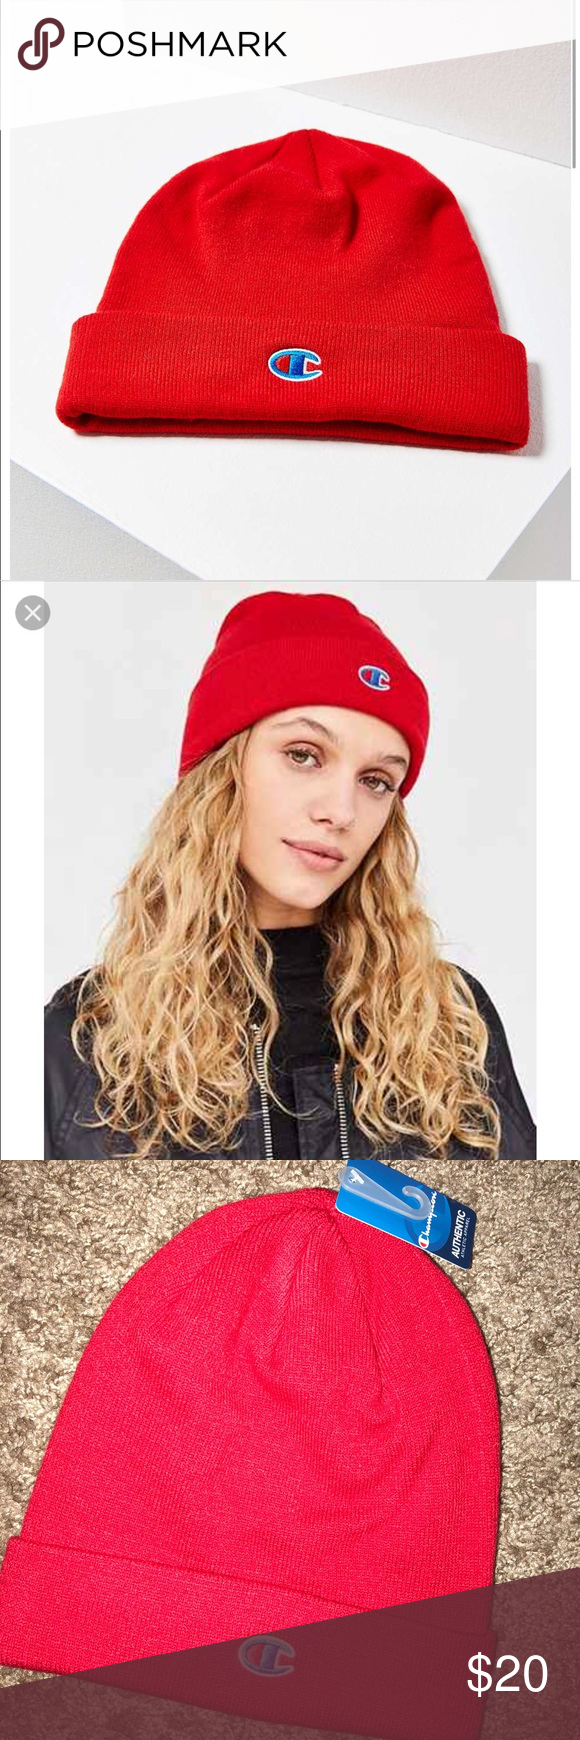 51d64c0286112 NWT Urban Outfitters x Champion beanie New with tags